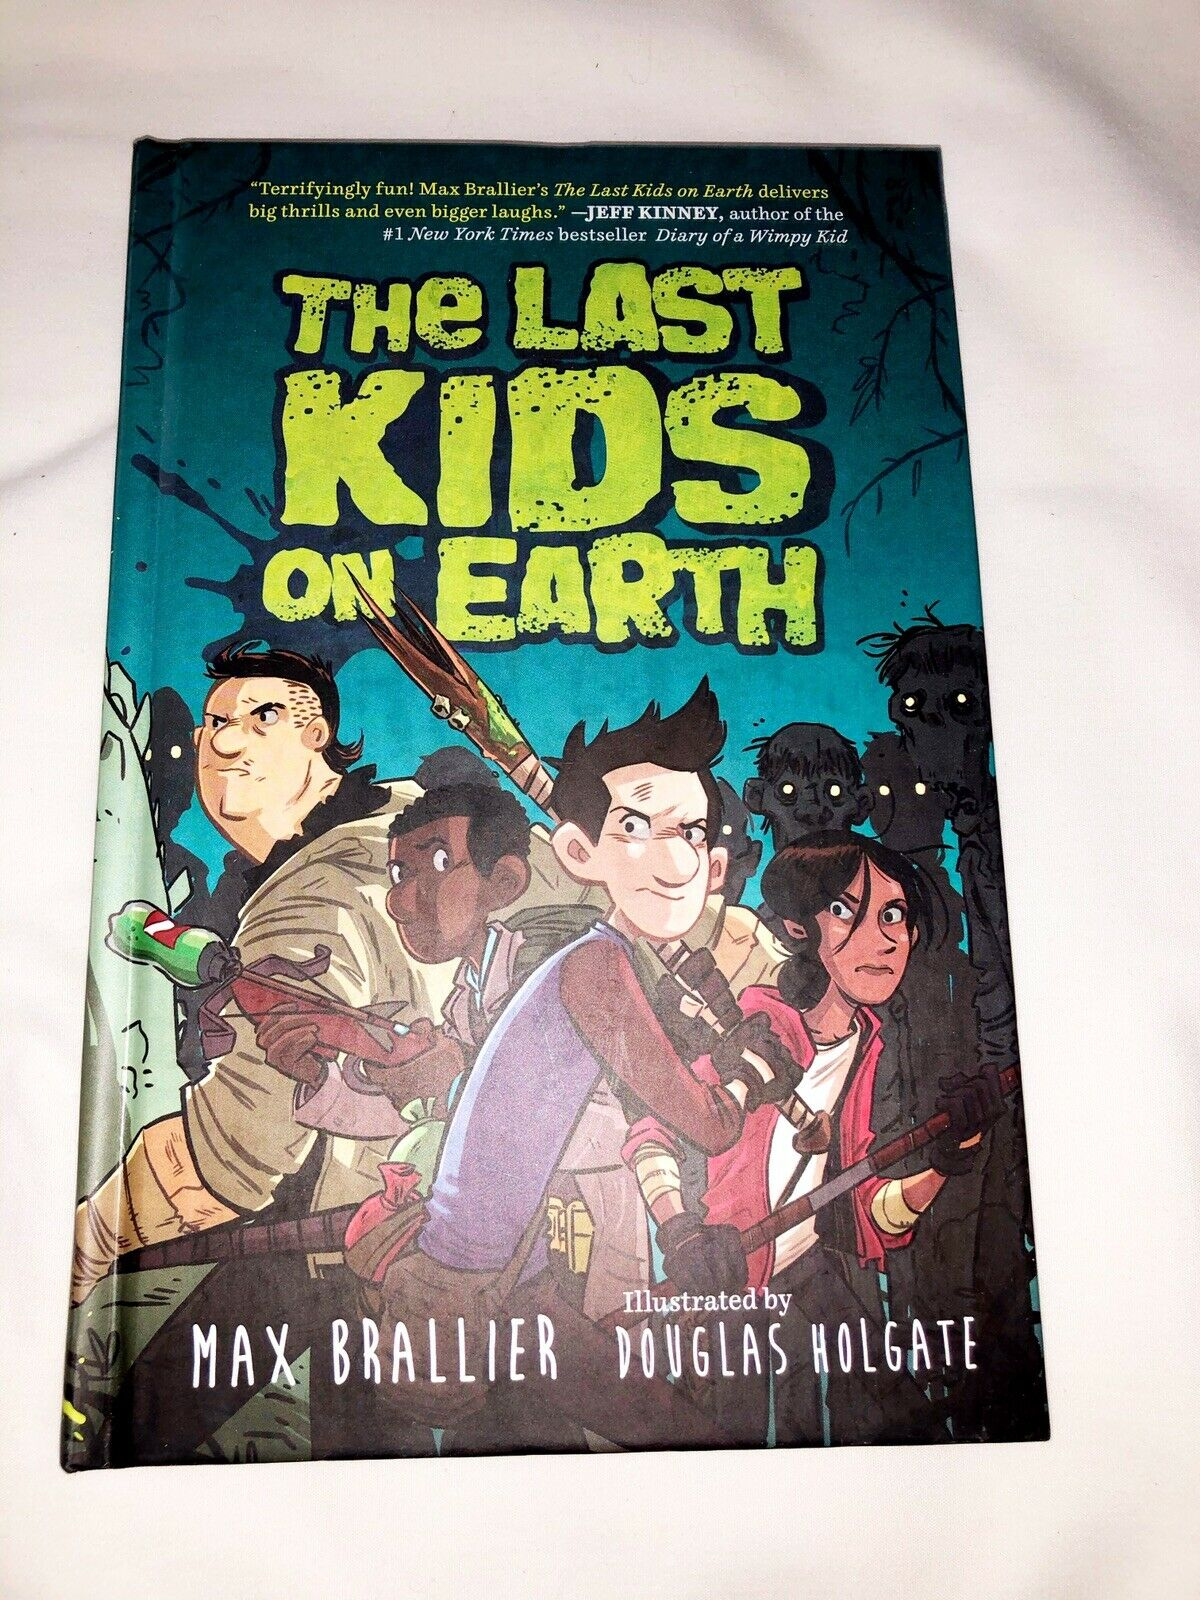 The Last Kids On Earth Ser The Last Kids On Earth By Max Brallier 2015 Hardcover For Sale Online Ebay